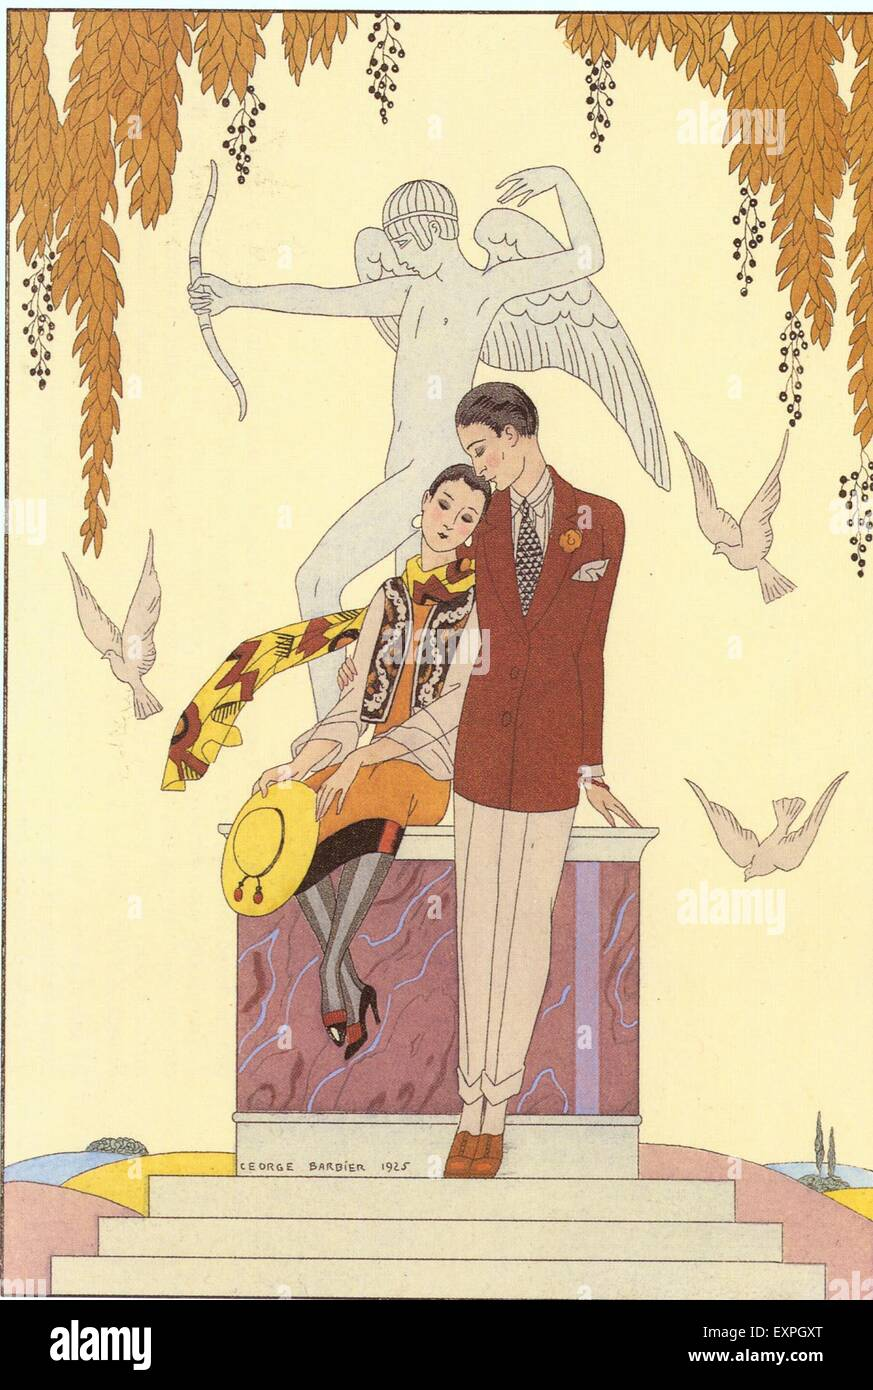 1920s France George Barbier Magazine Plate - Stock Image